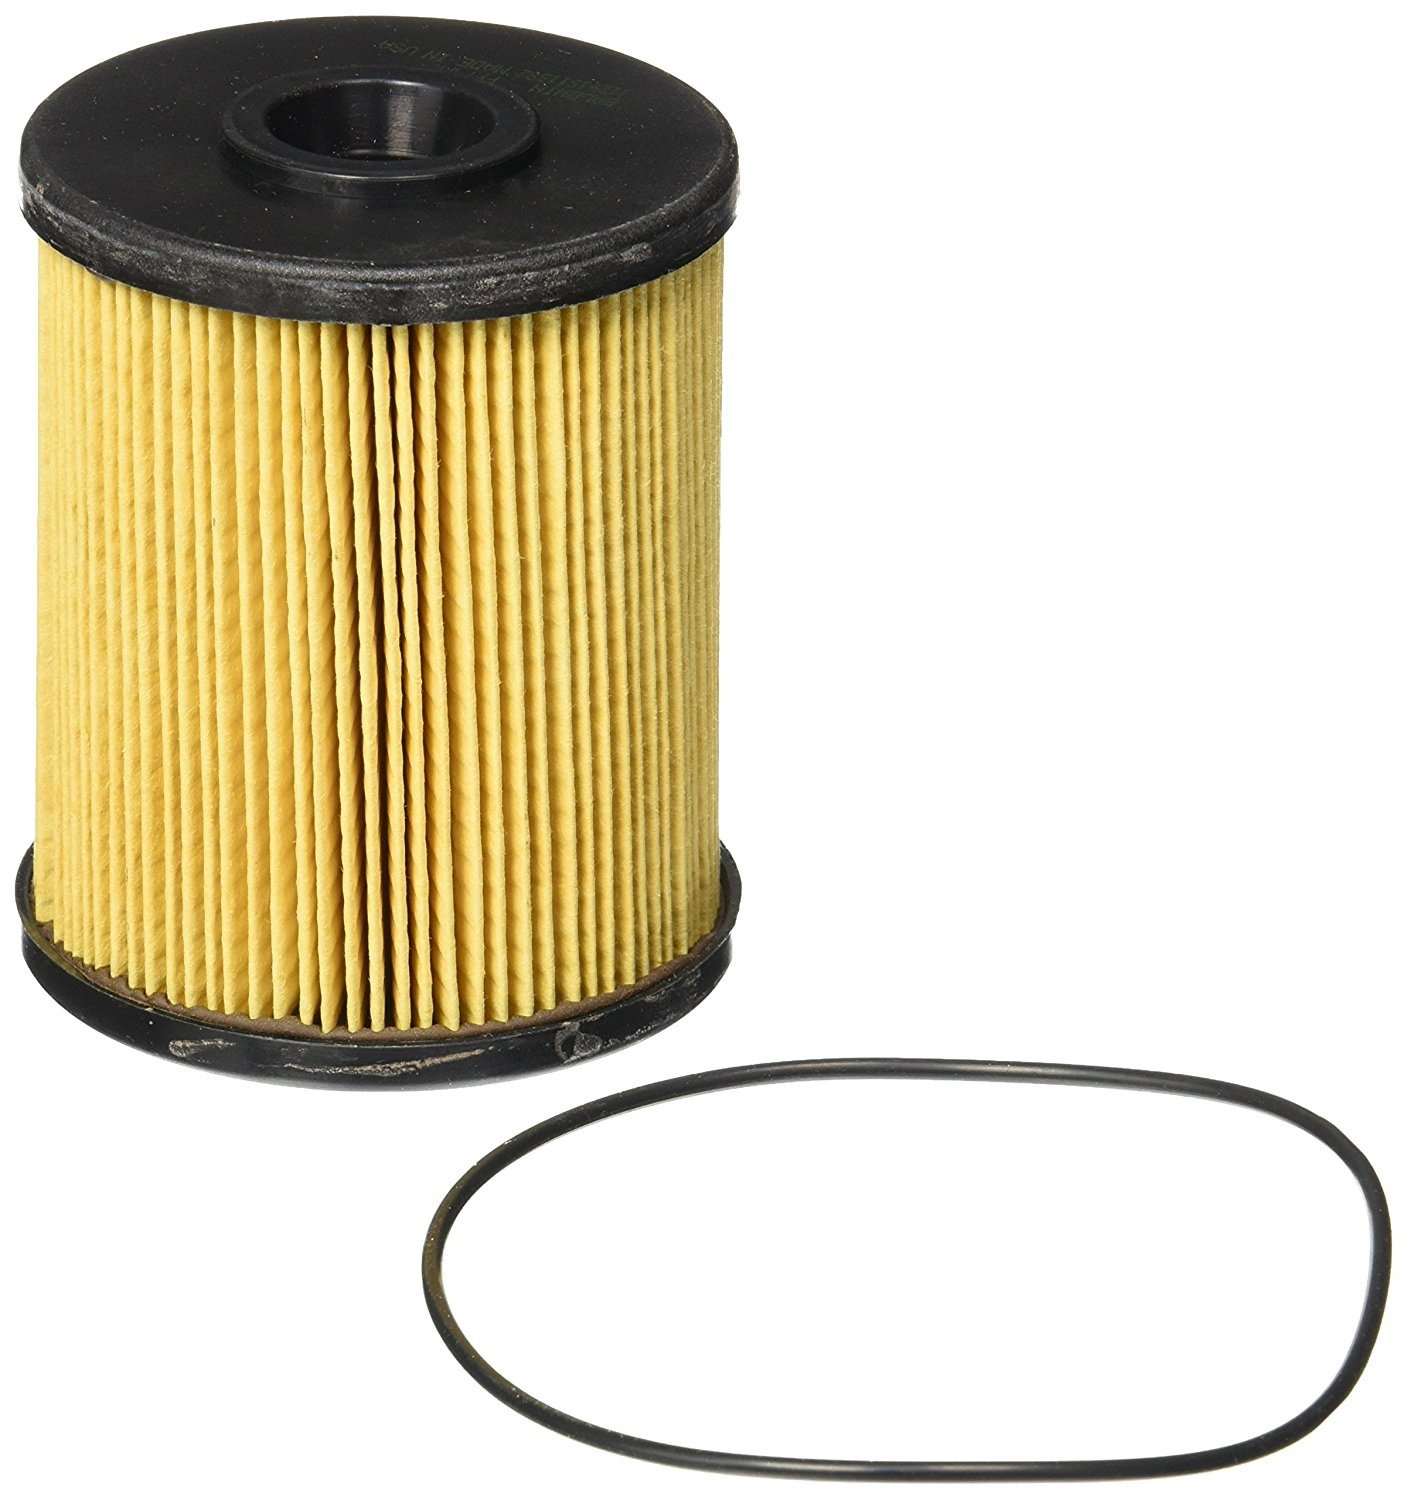 Baldwin PF7977 Heavy Duty Fuel Filter (Pack of 12) by Baldwin